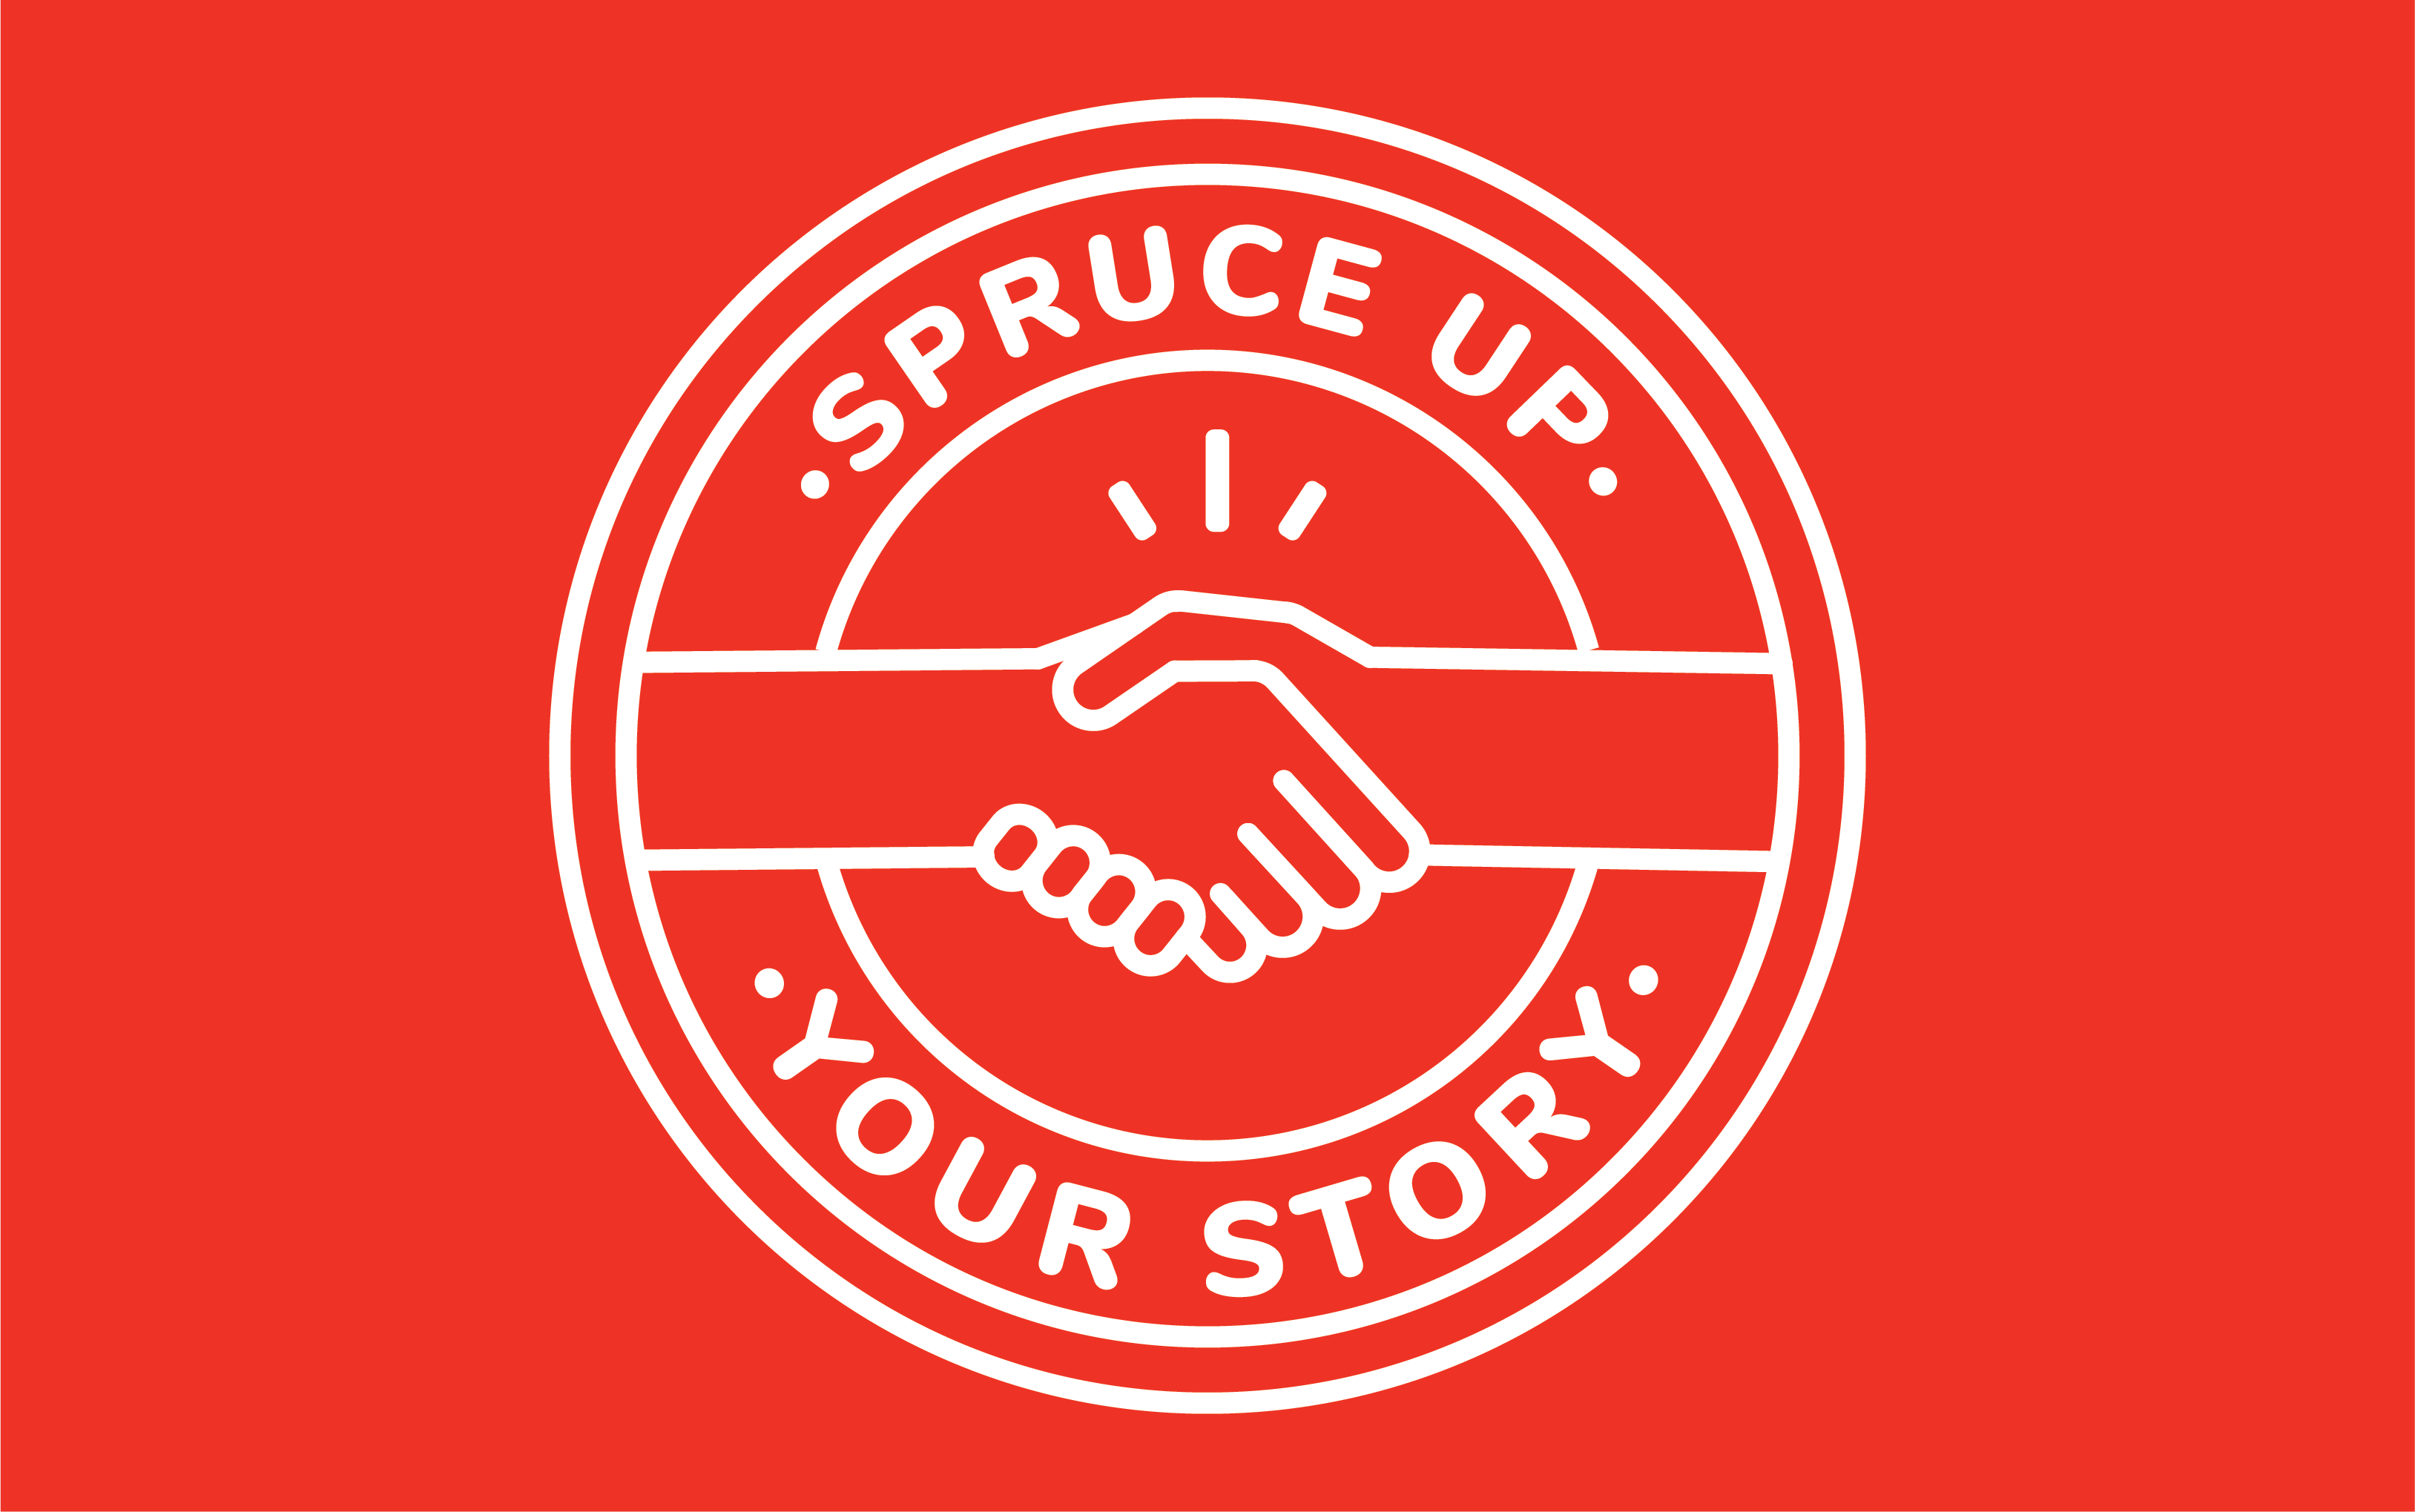 Spruce Up Your Story logo